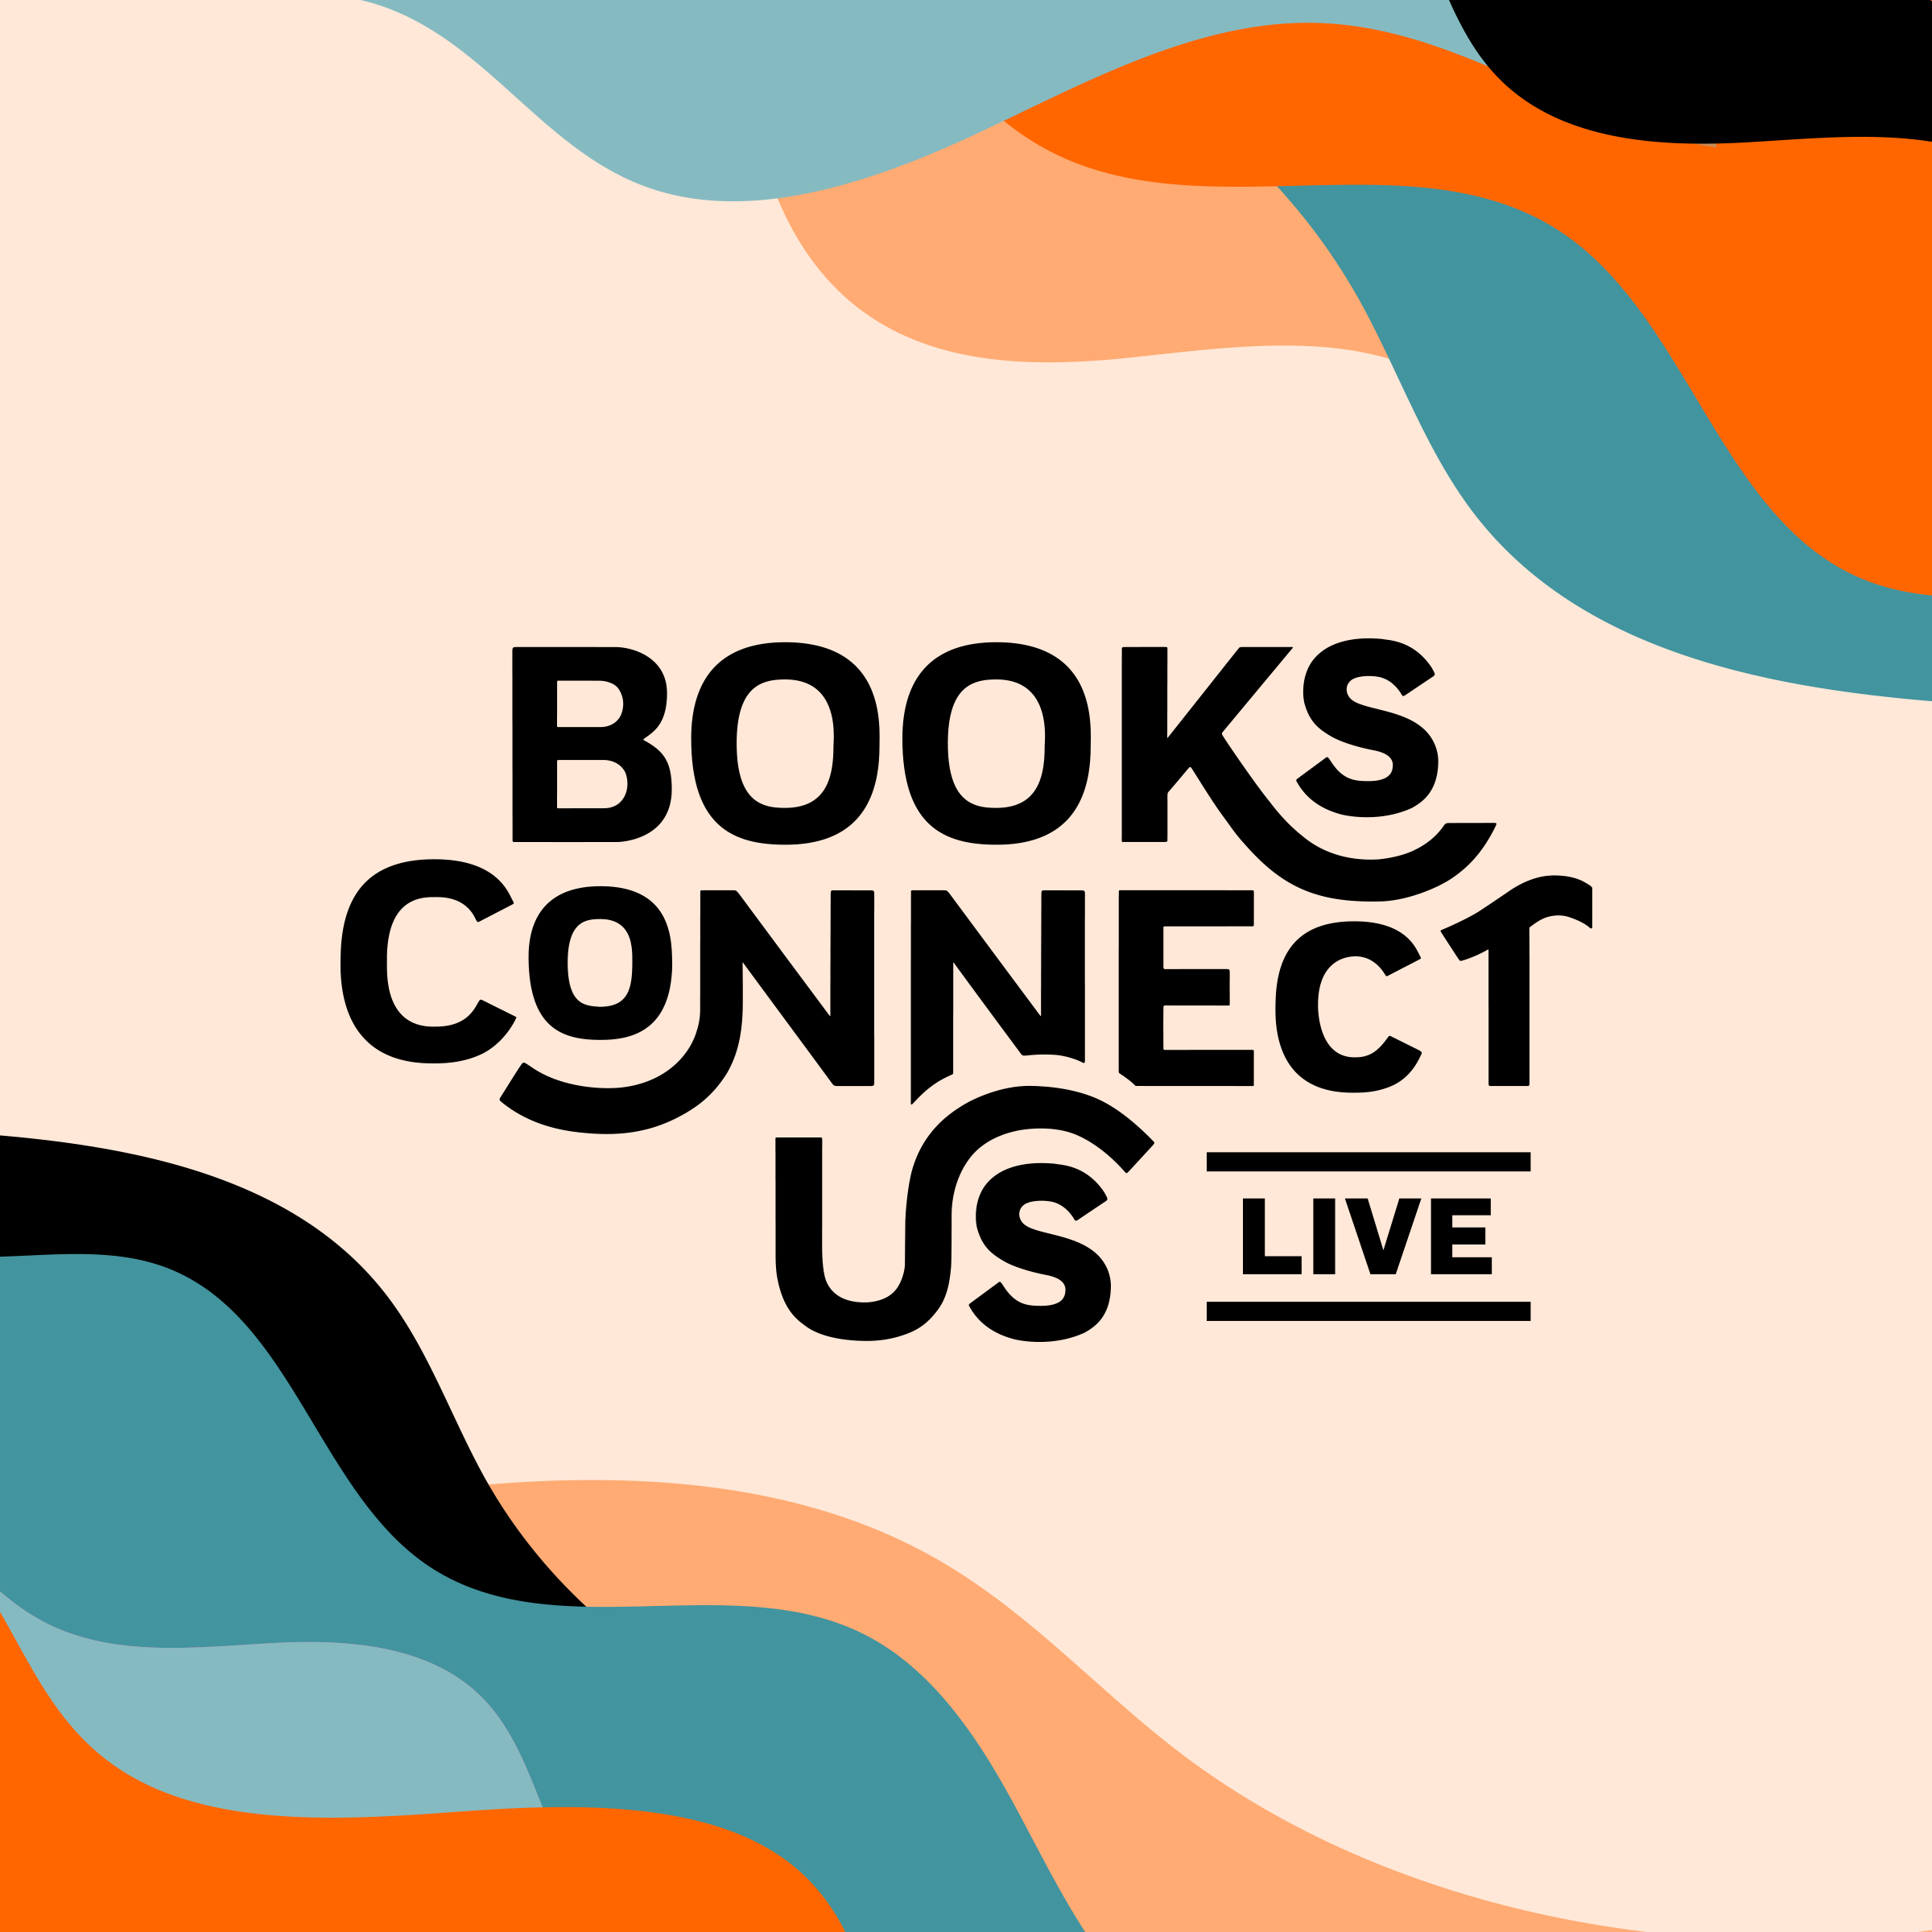 Books Connect Us Live 4/20-5/3